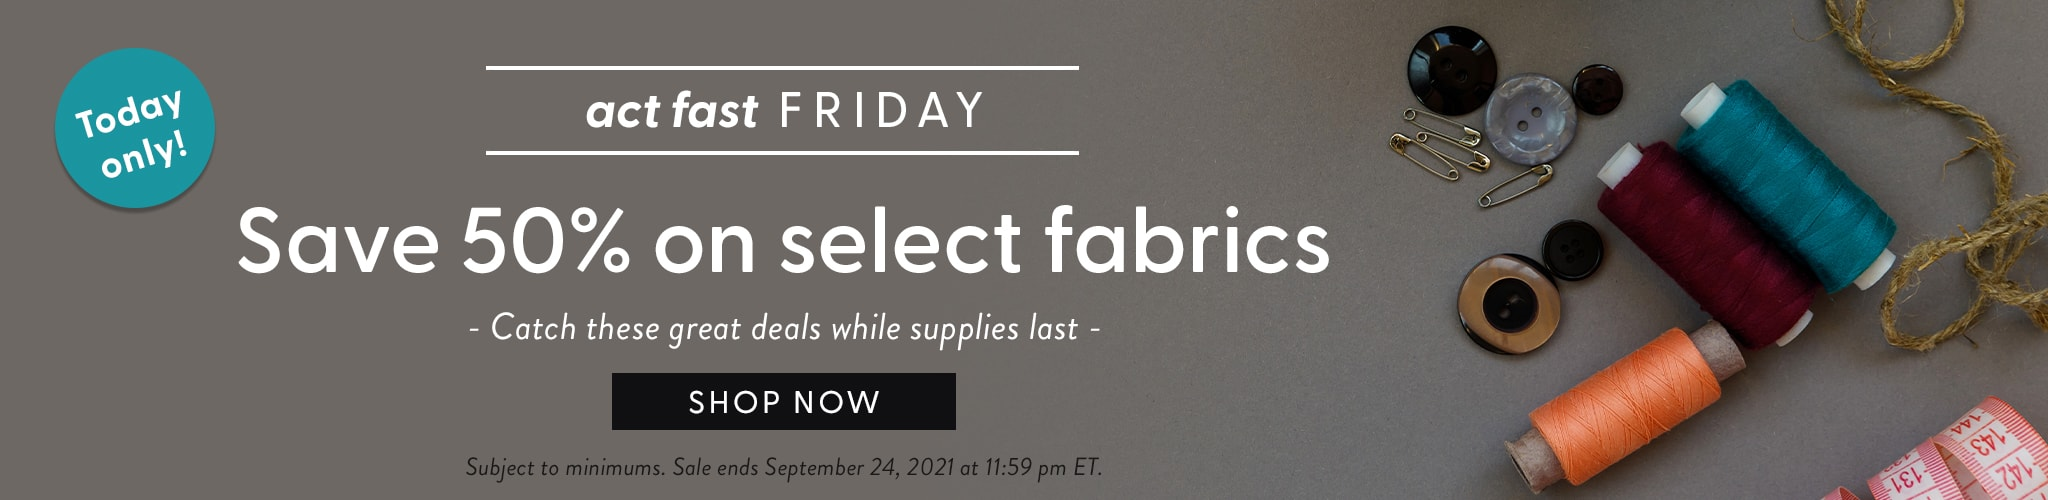 Today Only! Act Fast Friday. Save 50 percent on select fabrics. Catch these great deals while supplies last. Shop now. Subjec